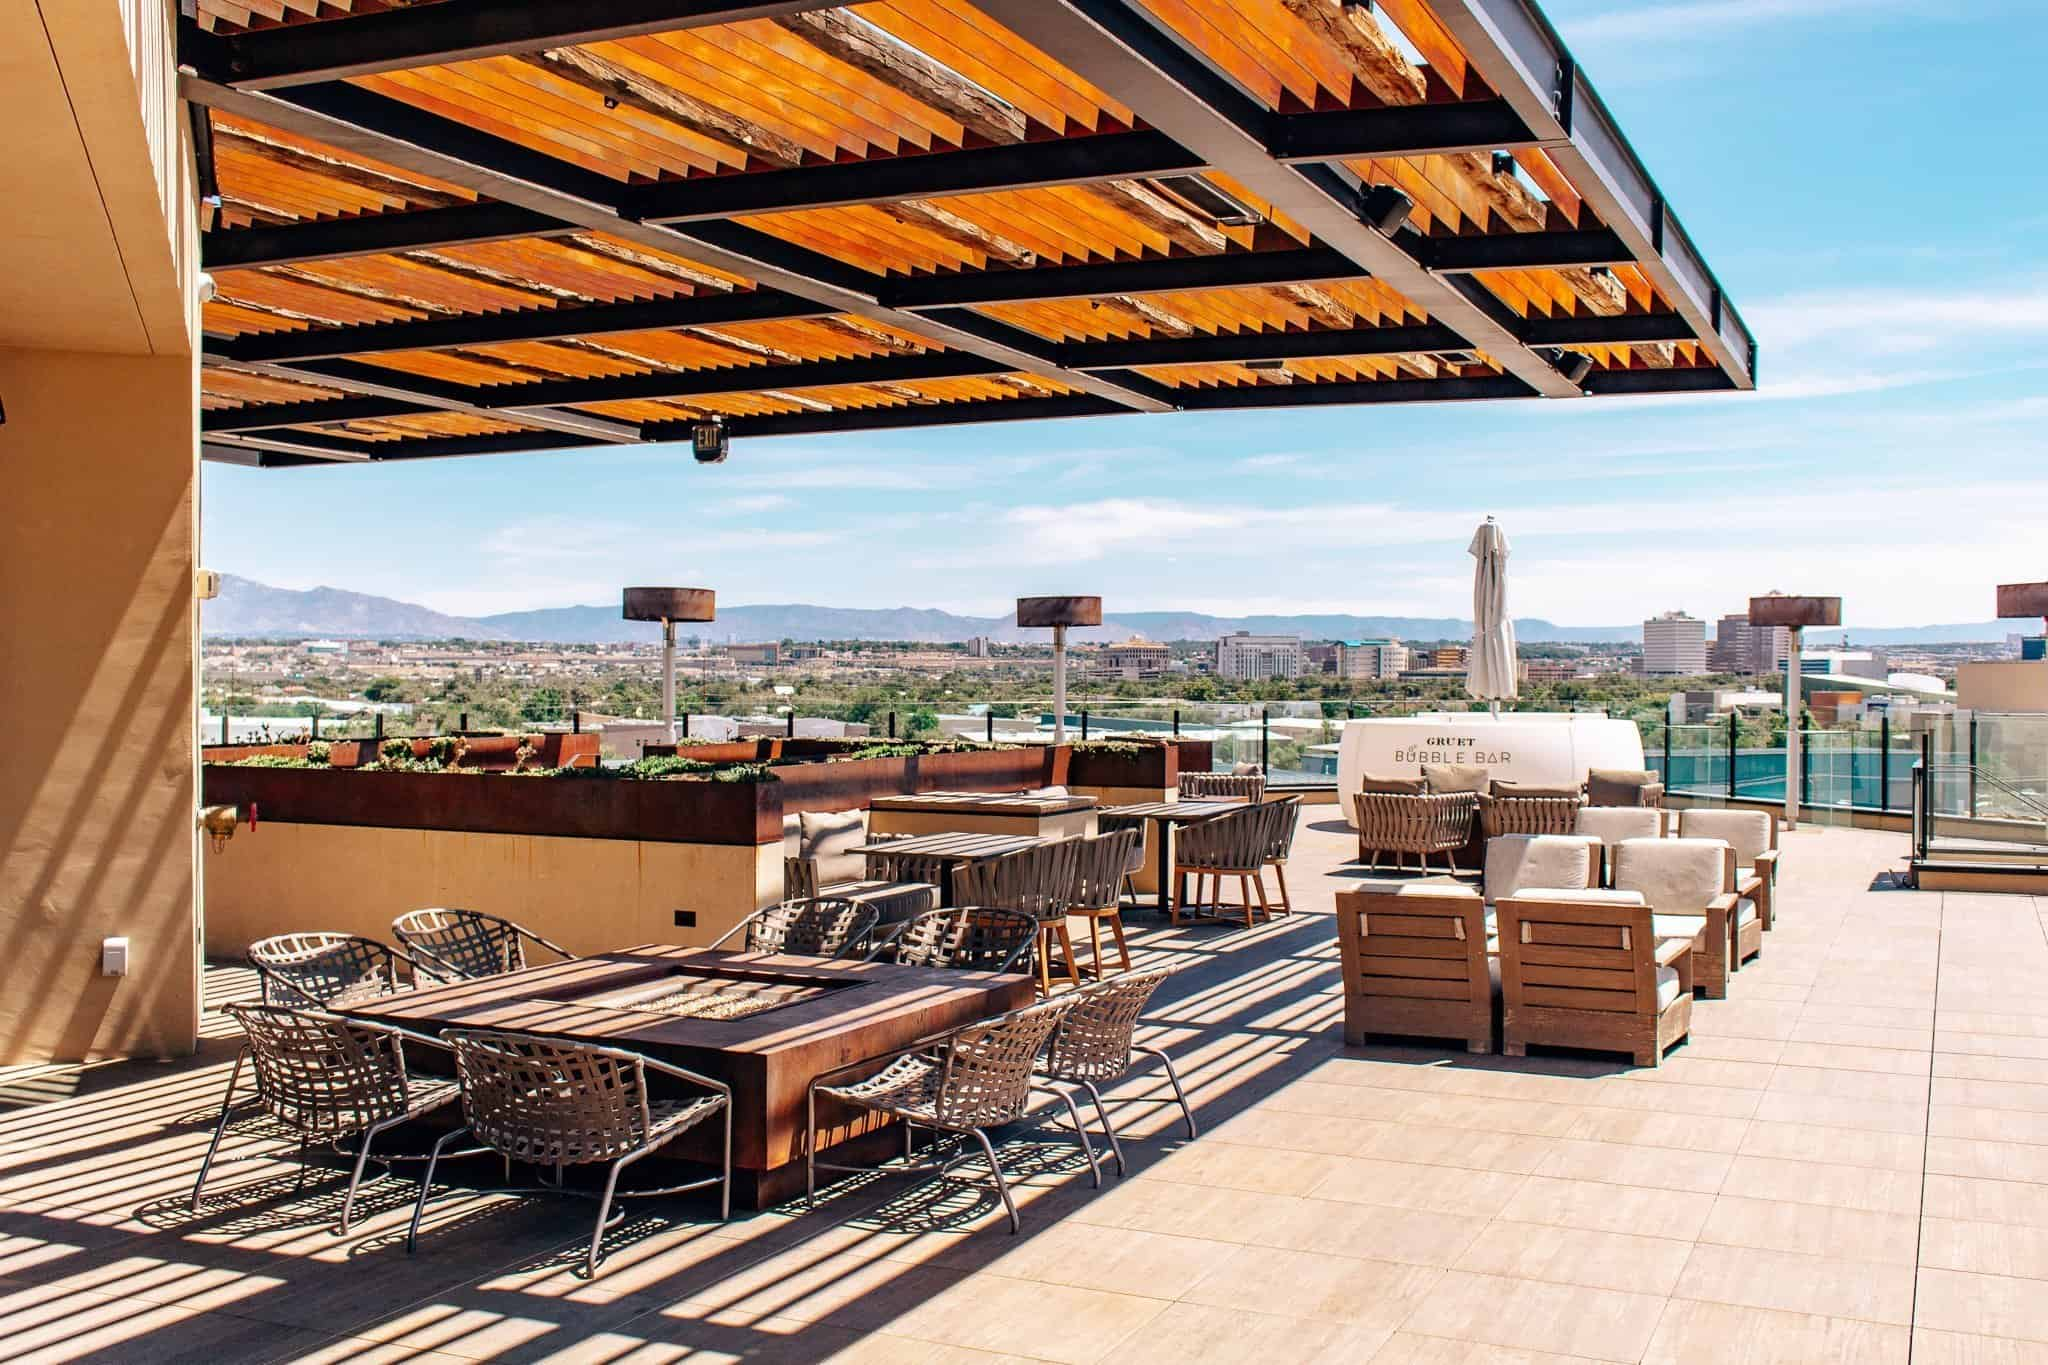 Rooftop Restaurant and Bar at Hotel Chaco - The Next Trip